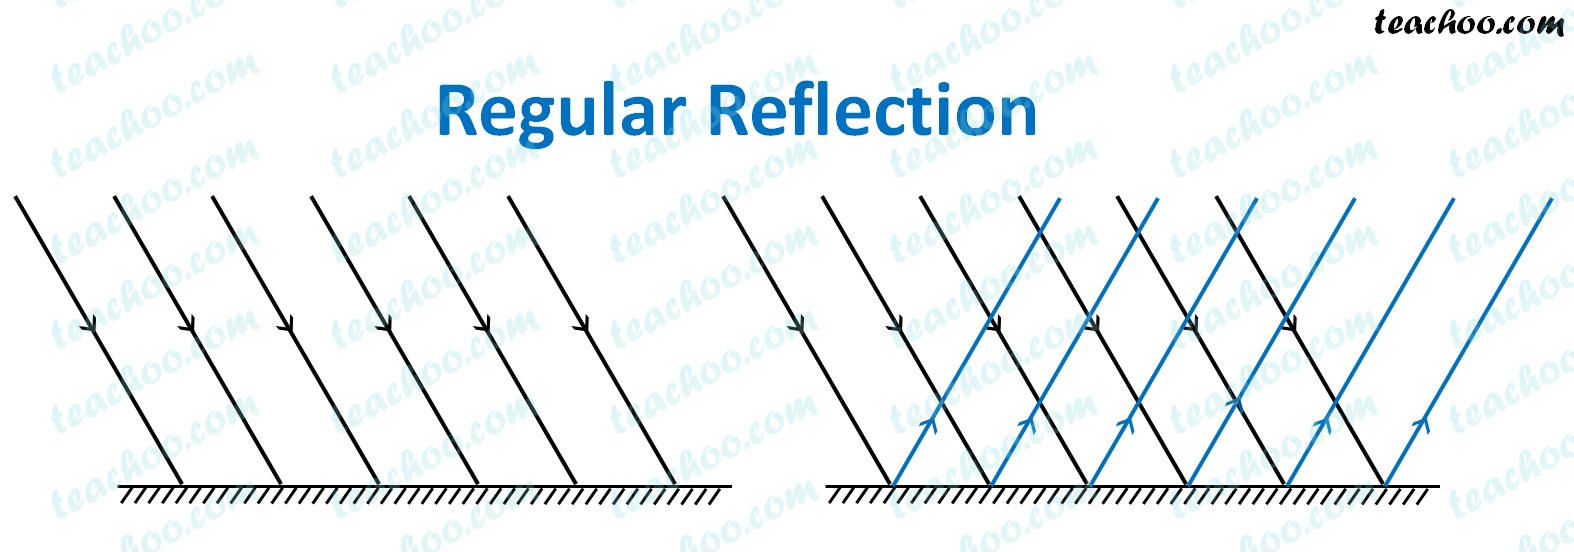 regular-reflection---teachoo.jpg